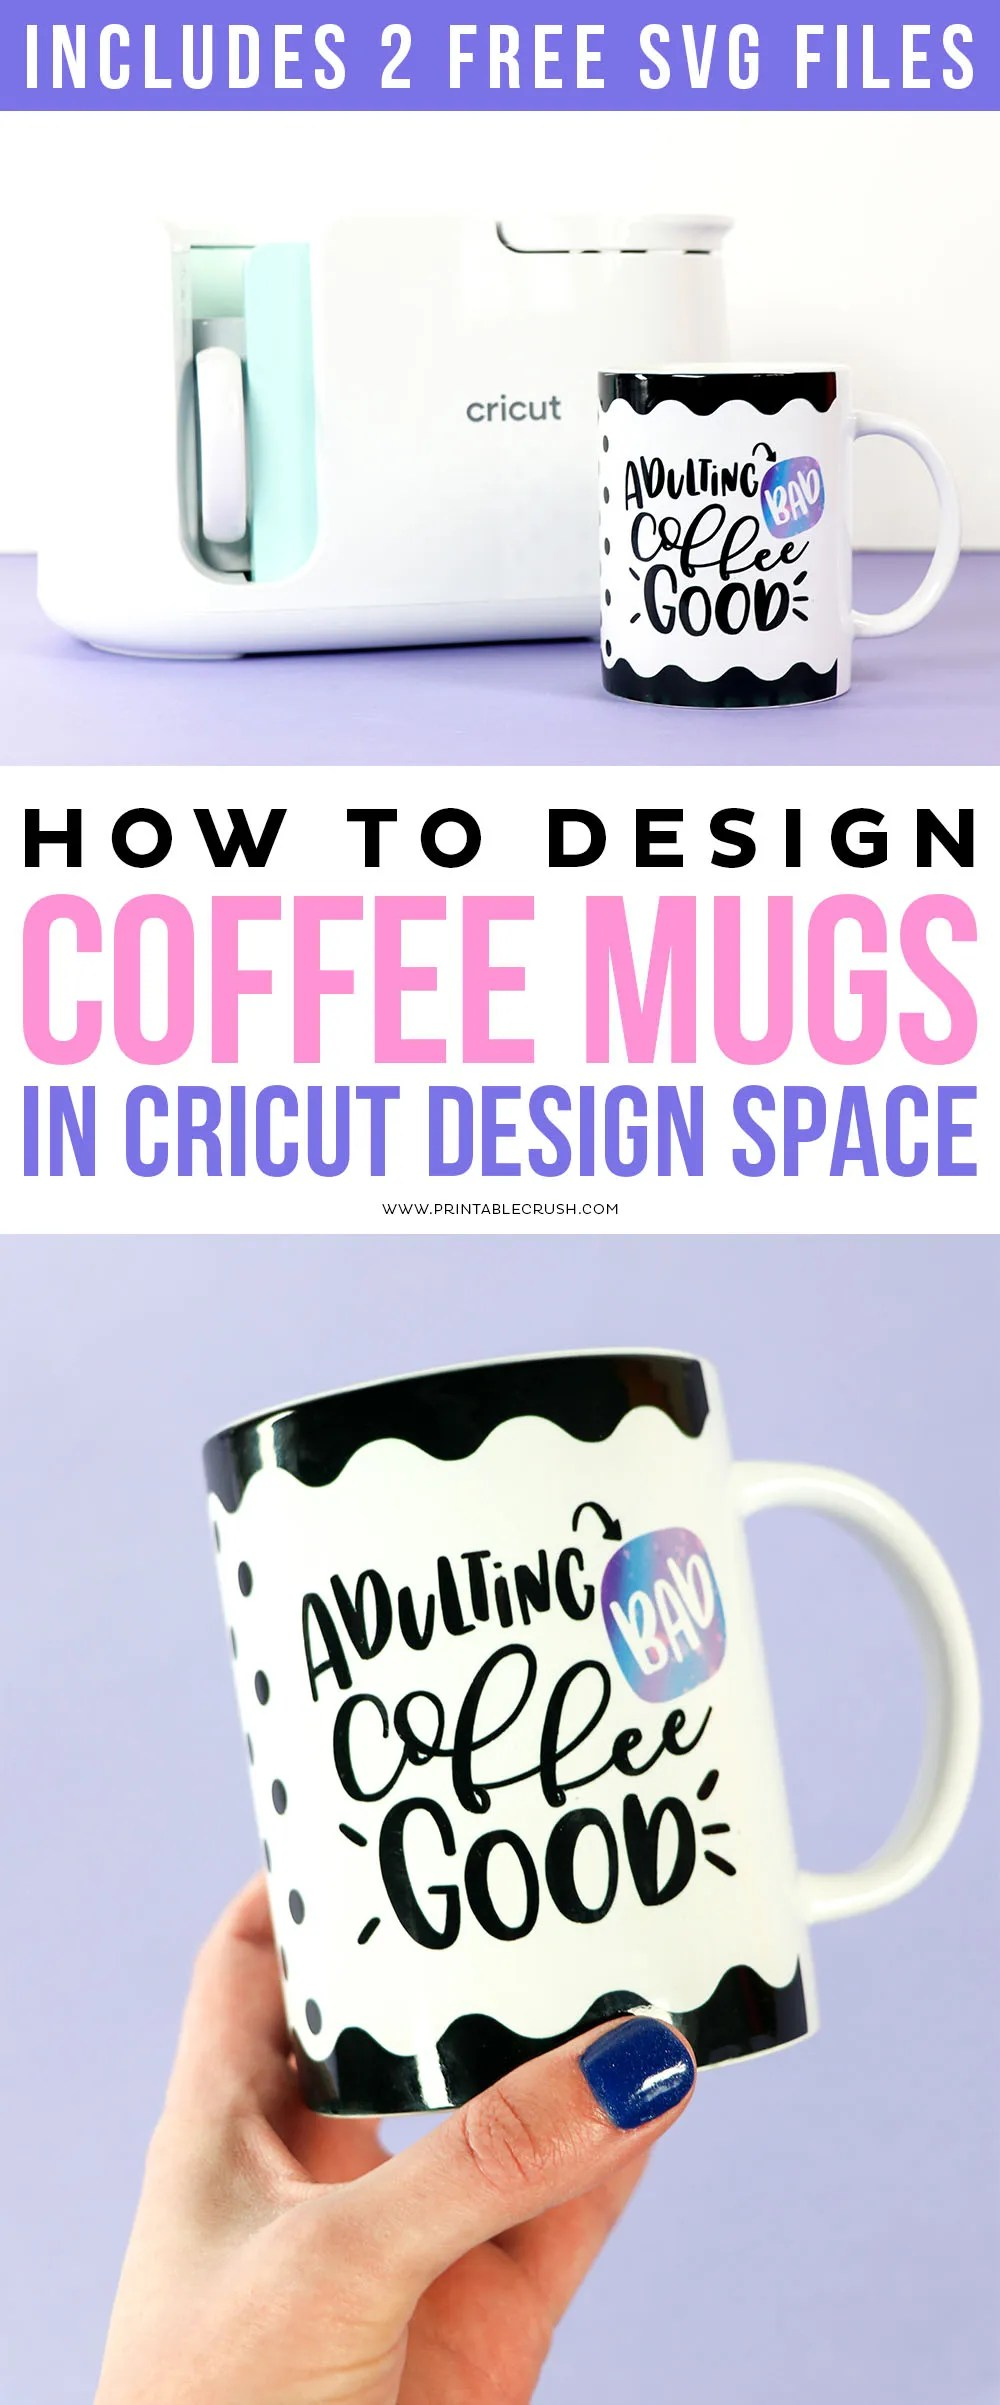 How to design Mugs in Cricut Design Space with SVG Files - Cricut MugPress - Printable Crush